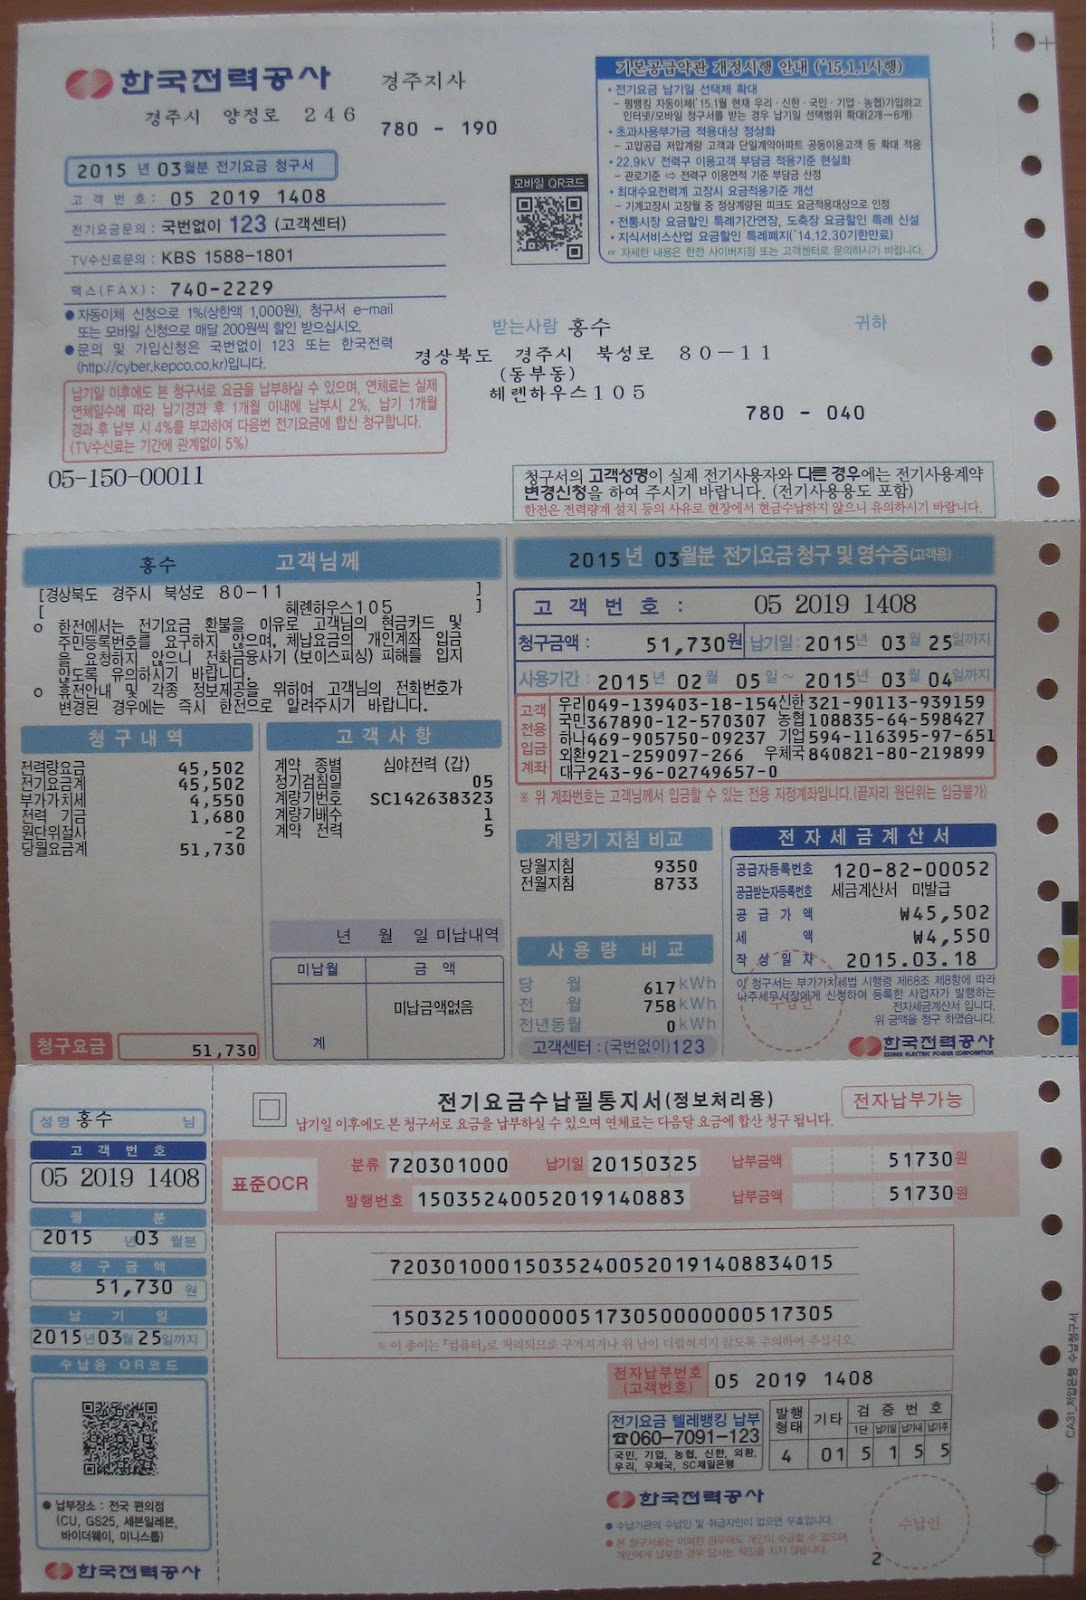 Shouer Journal Paying Bills By Bank Machine Wiring Money To South Korea On The Middle Right There Is A Red Box Within Which Are Account Numbers At All Major Banks In You Can Transfer Any One